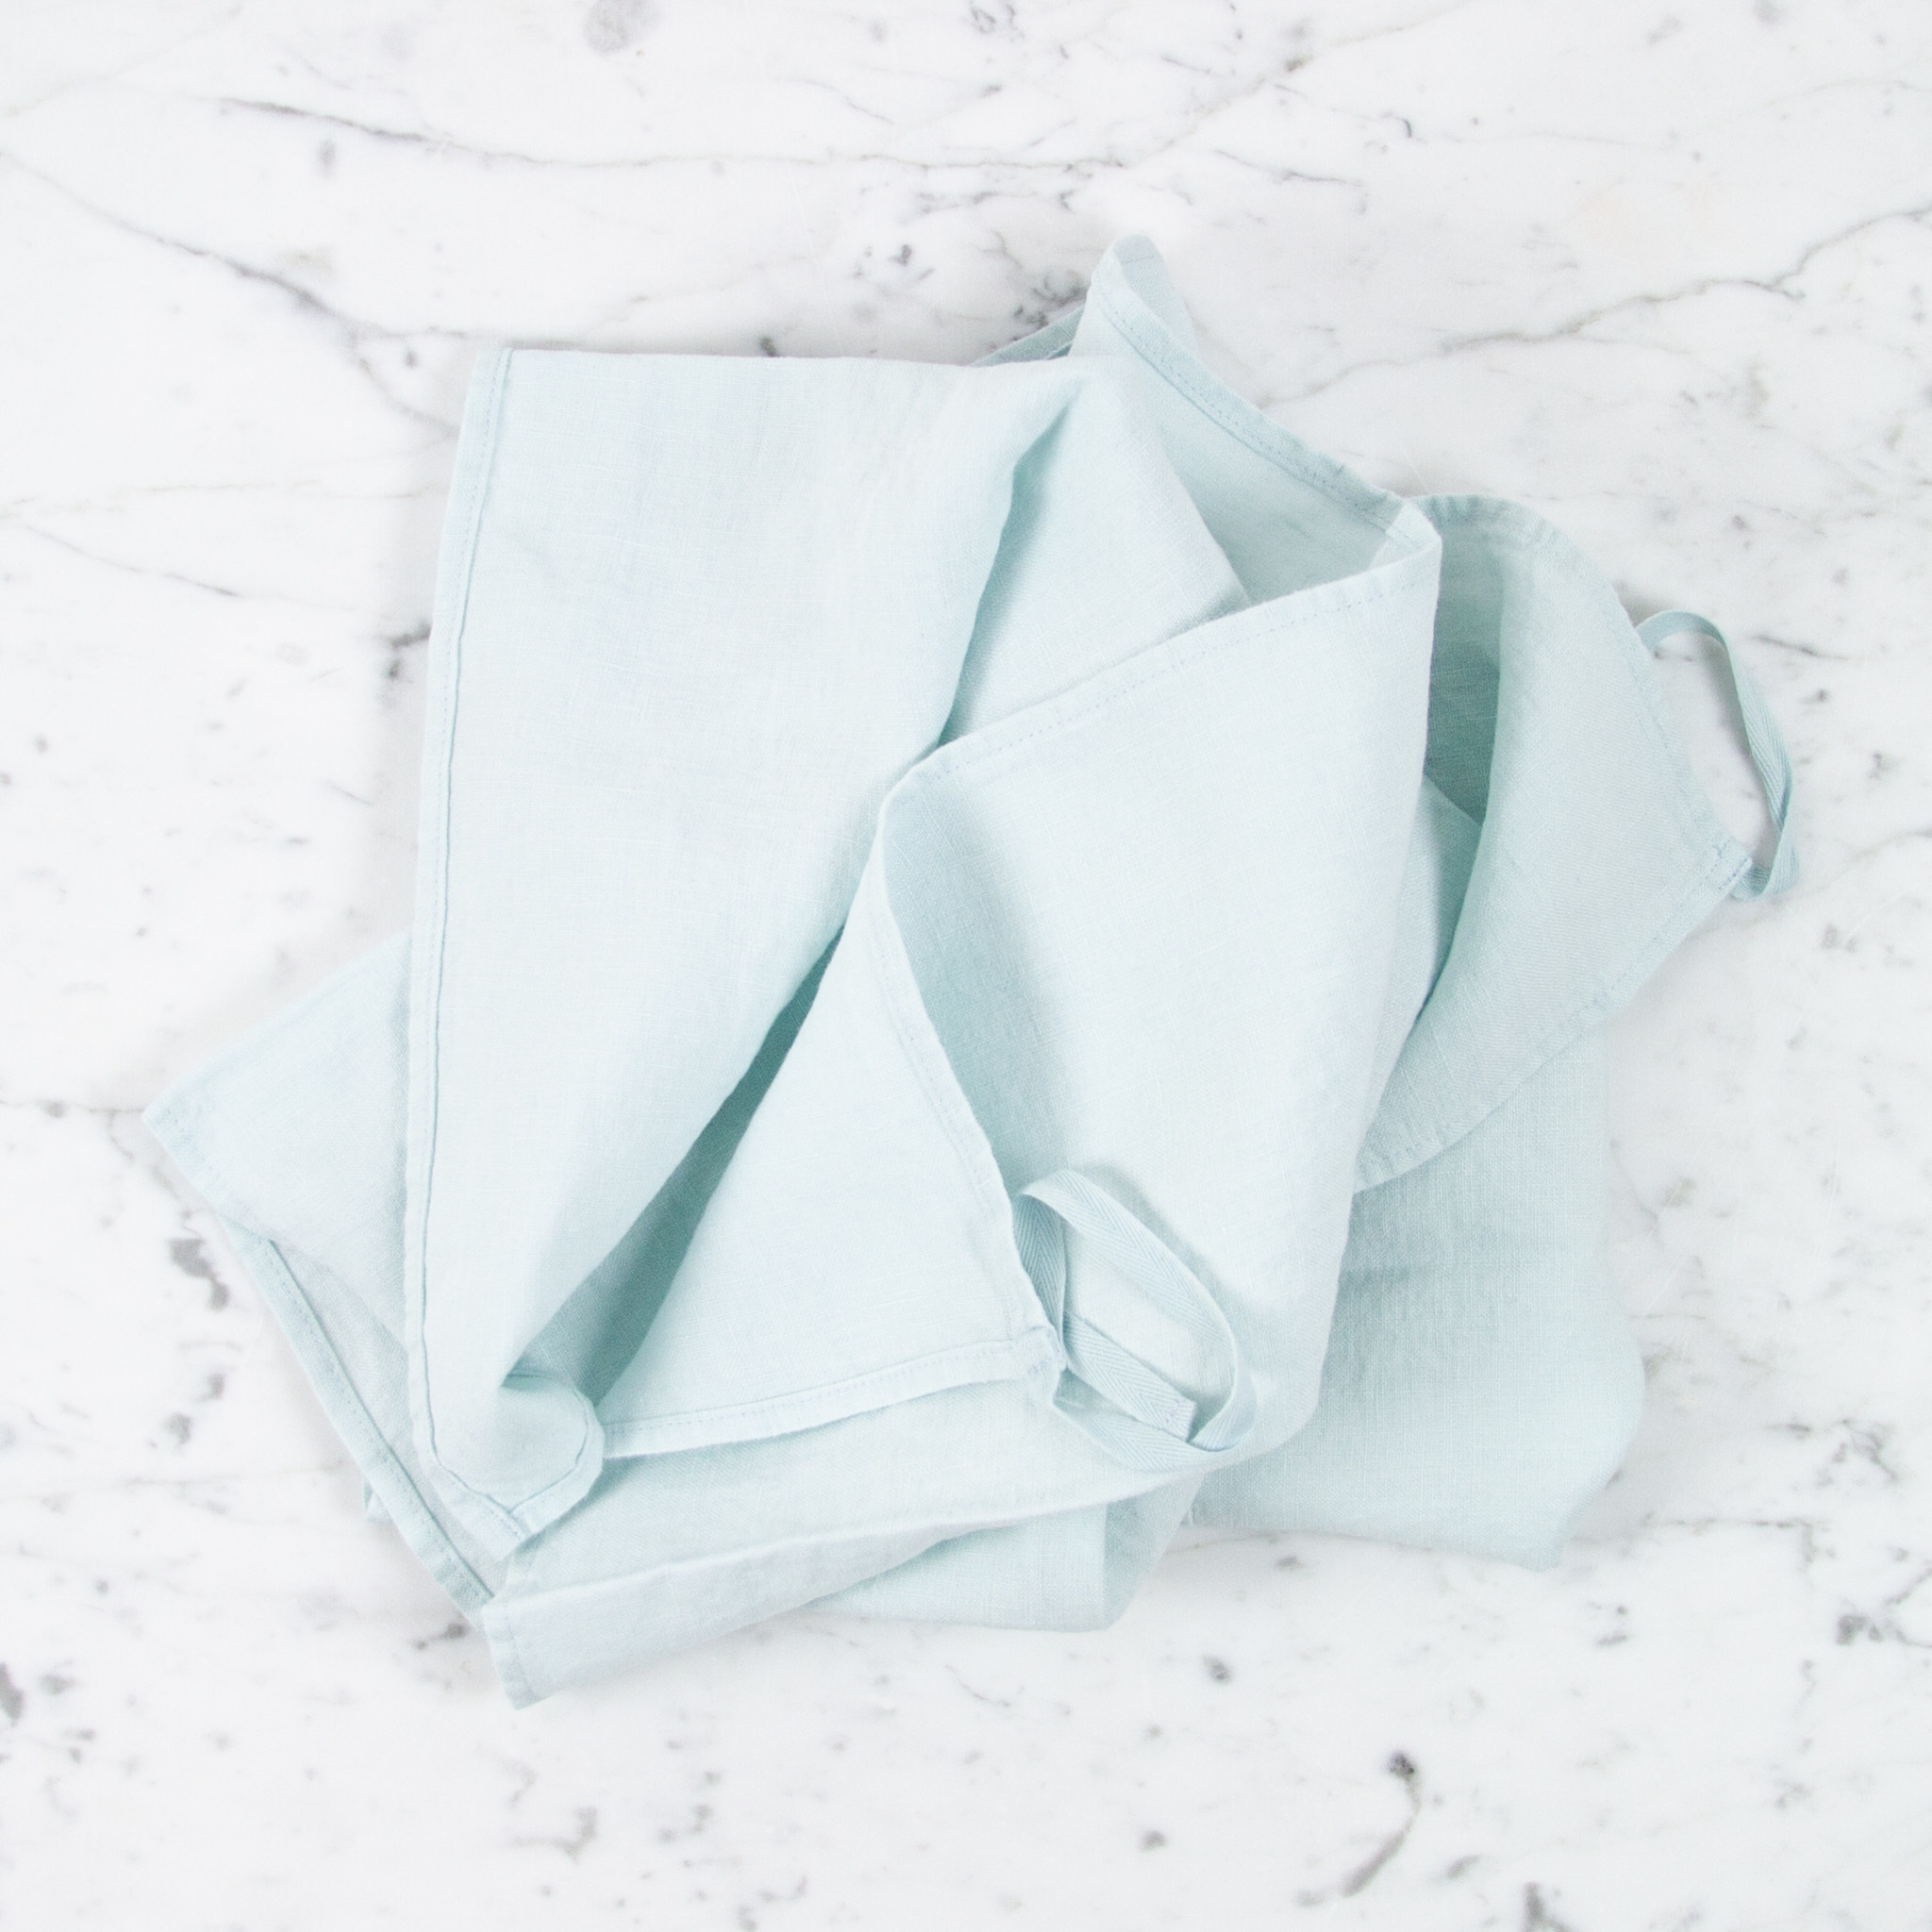 Washed French Linen Dish or Hand Towel with Hidden Apron Strings - Pale Blue